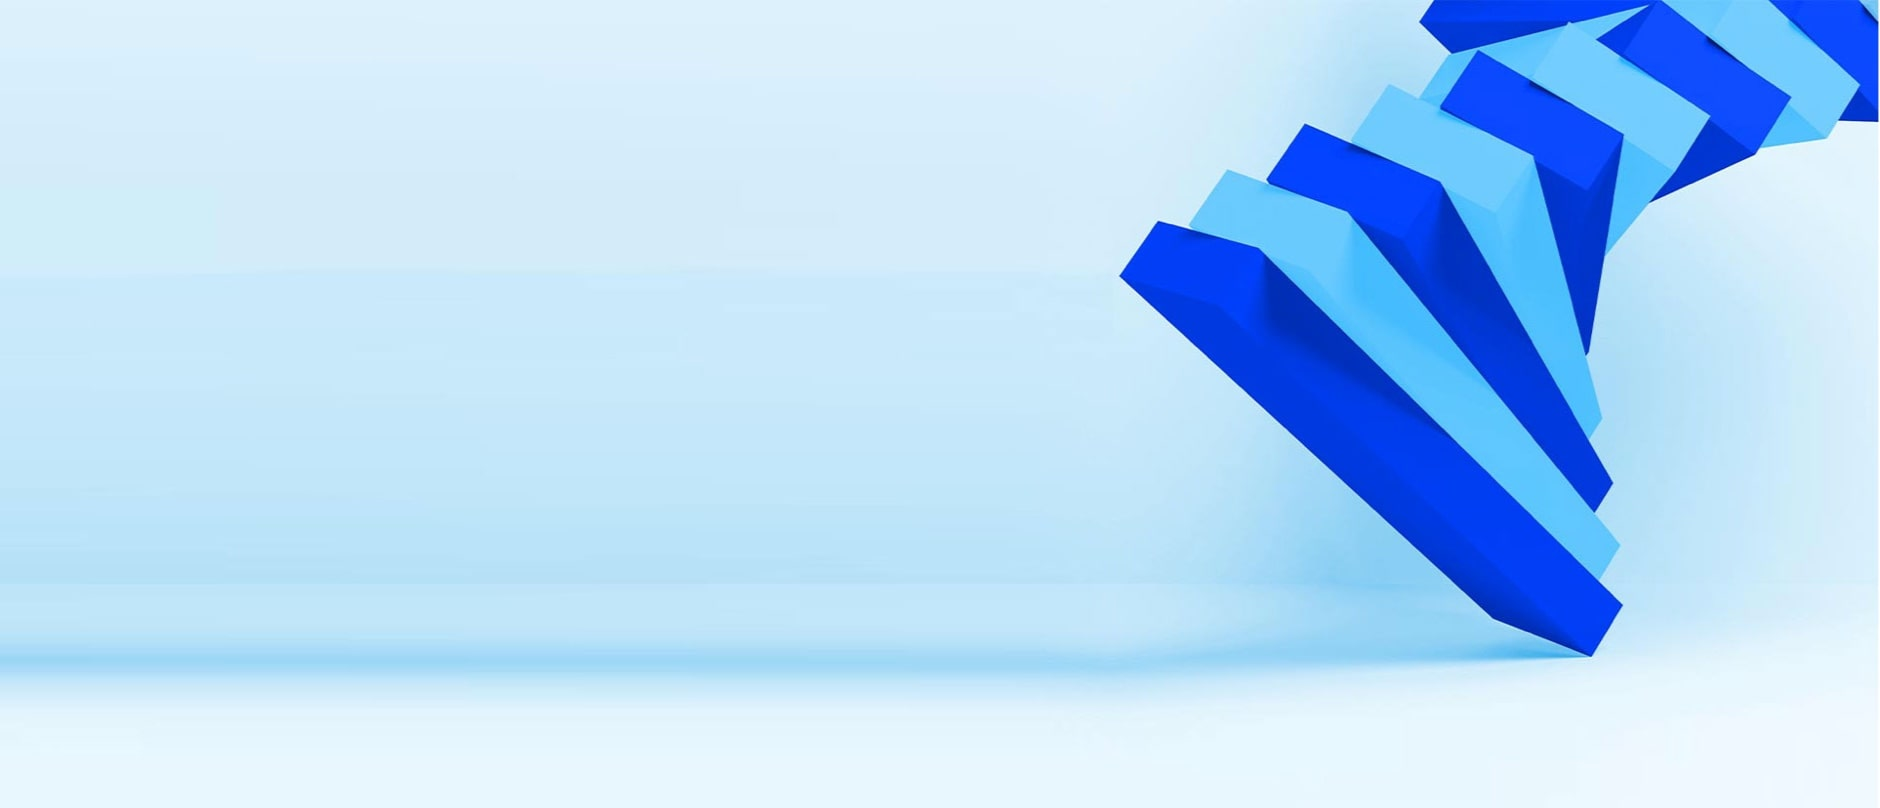 many blue 3D rectangles floating on a blue background